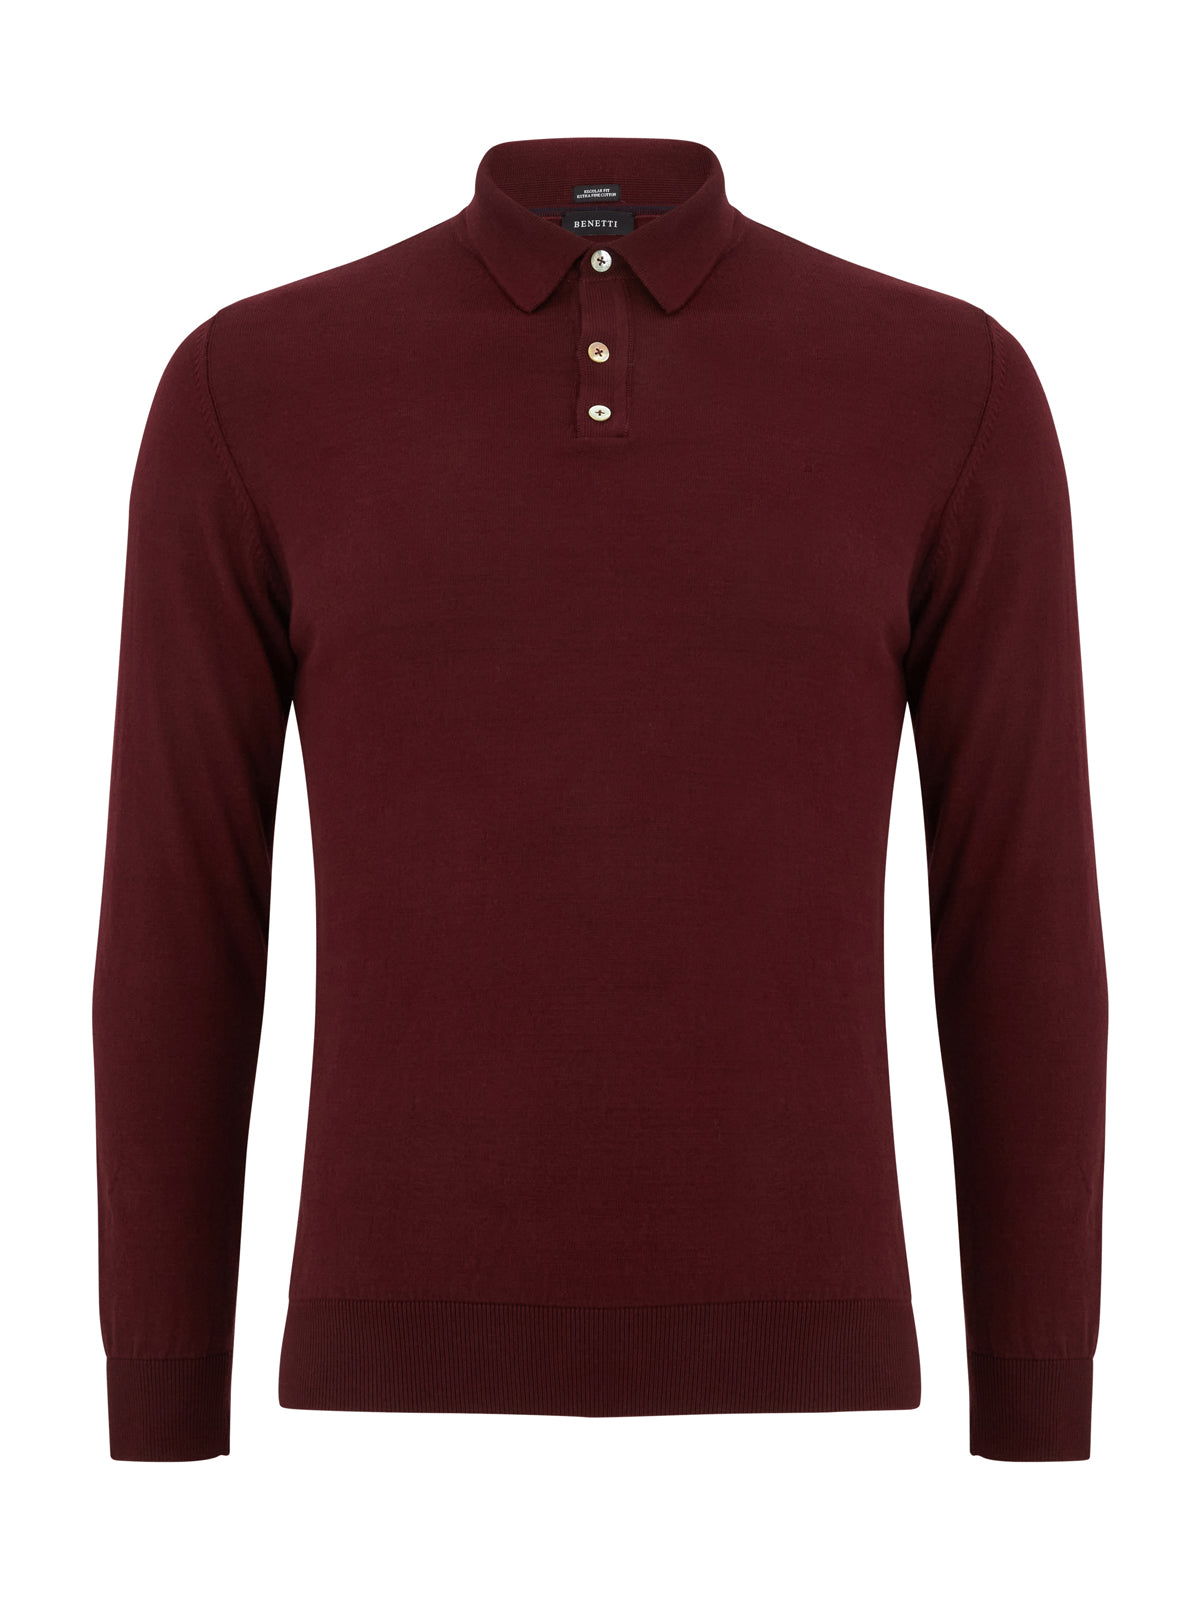 Geron Bordo Benetti Sweater